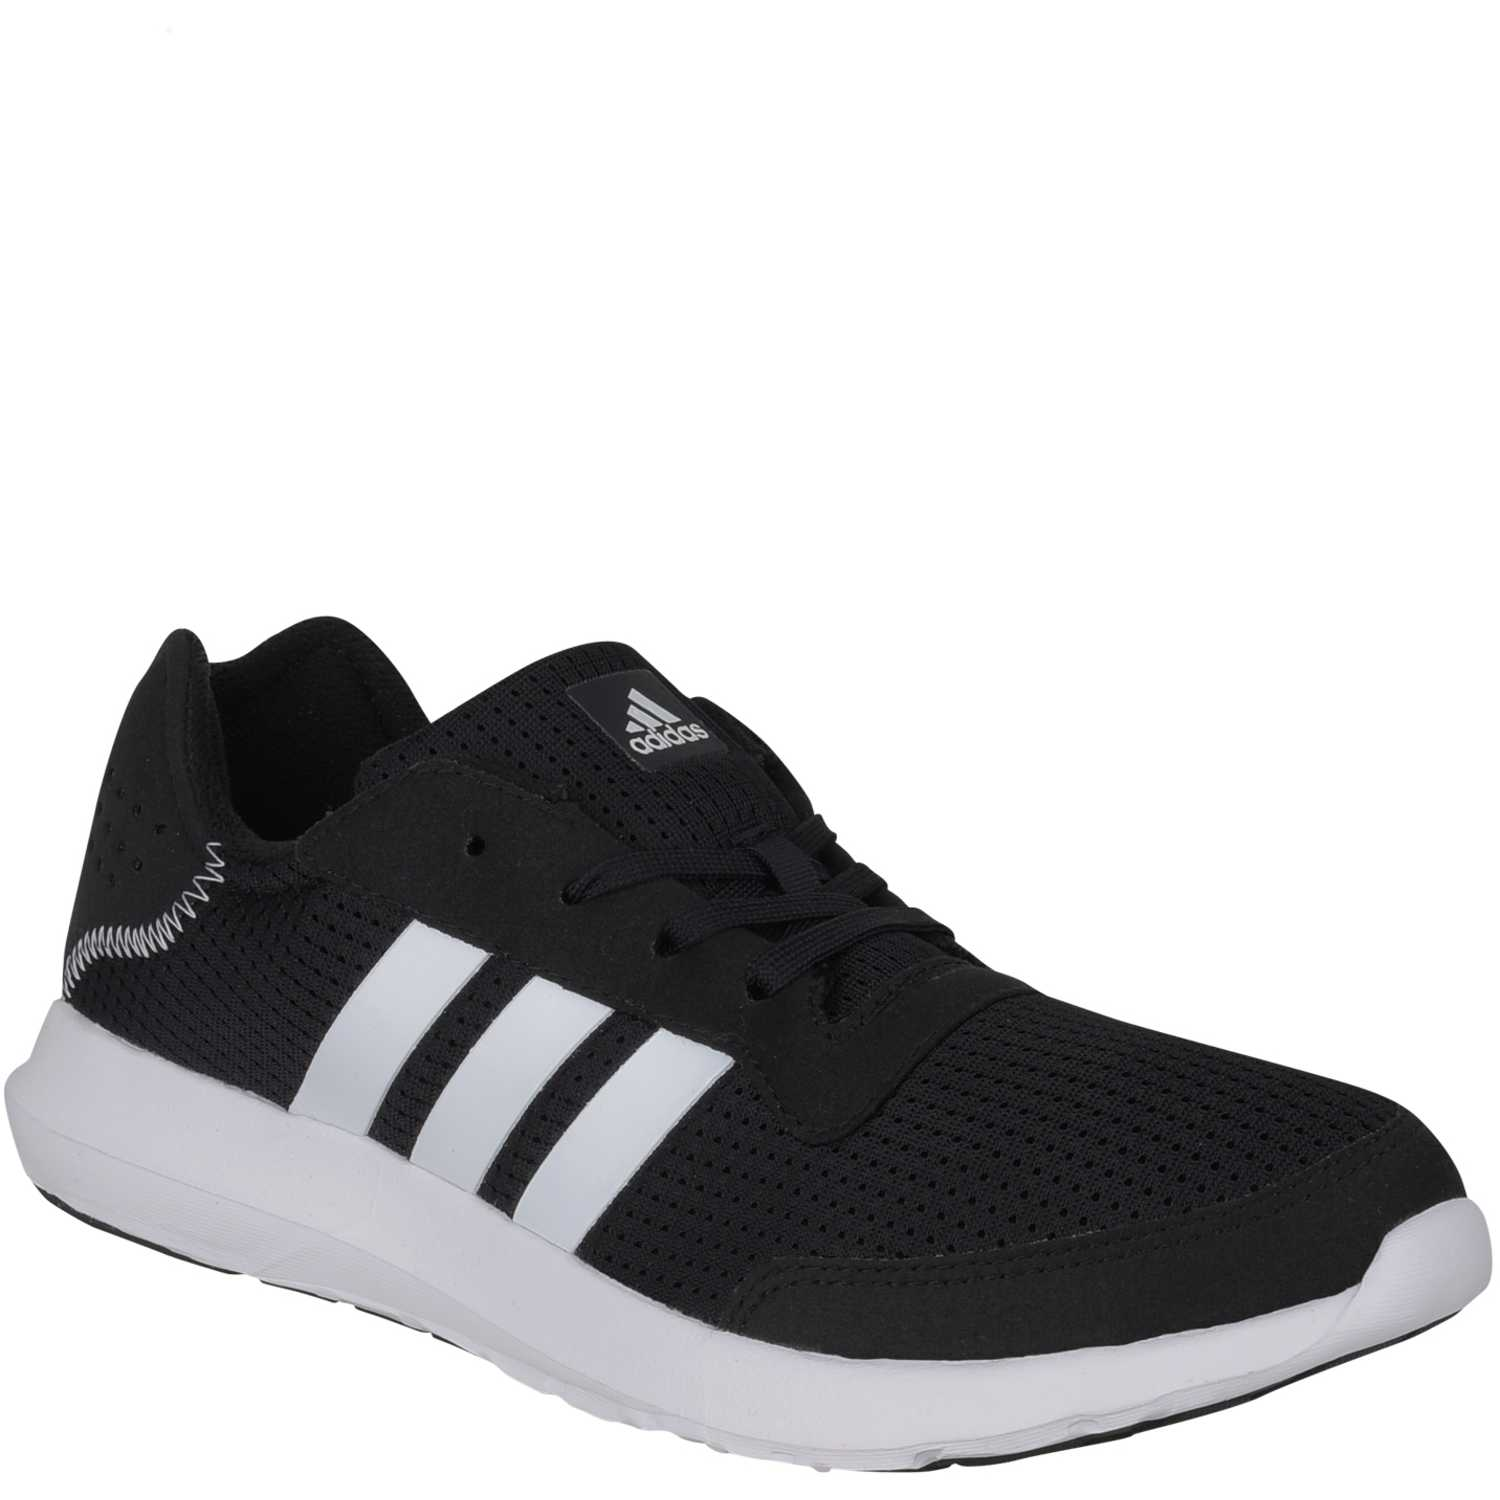 more photos be6ec 3a220 Zapatilla de Hombre adidas Negro   Blanco element refresh m